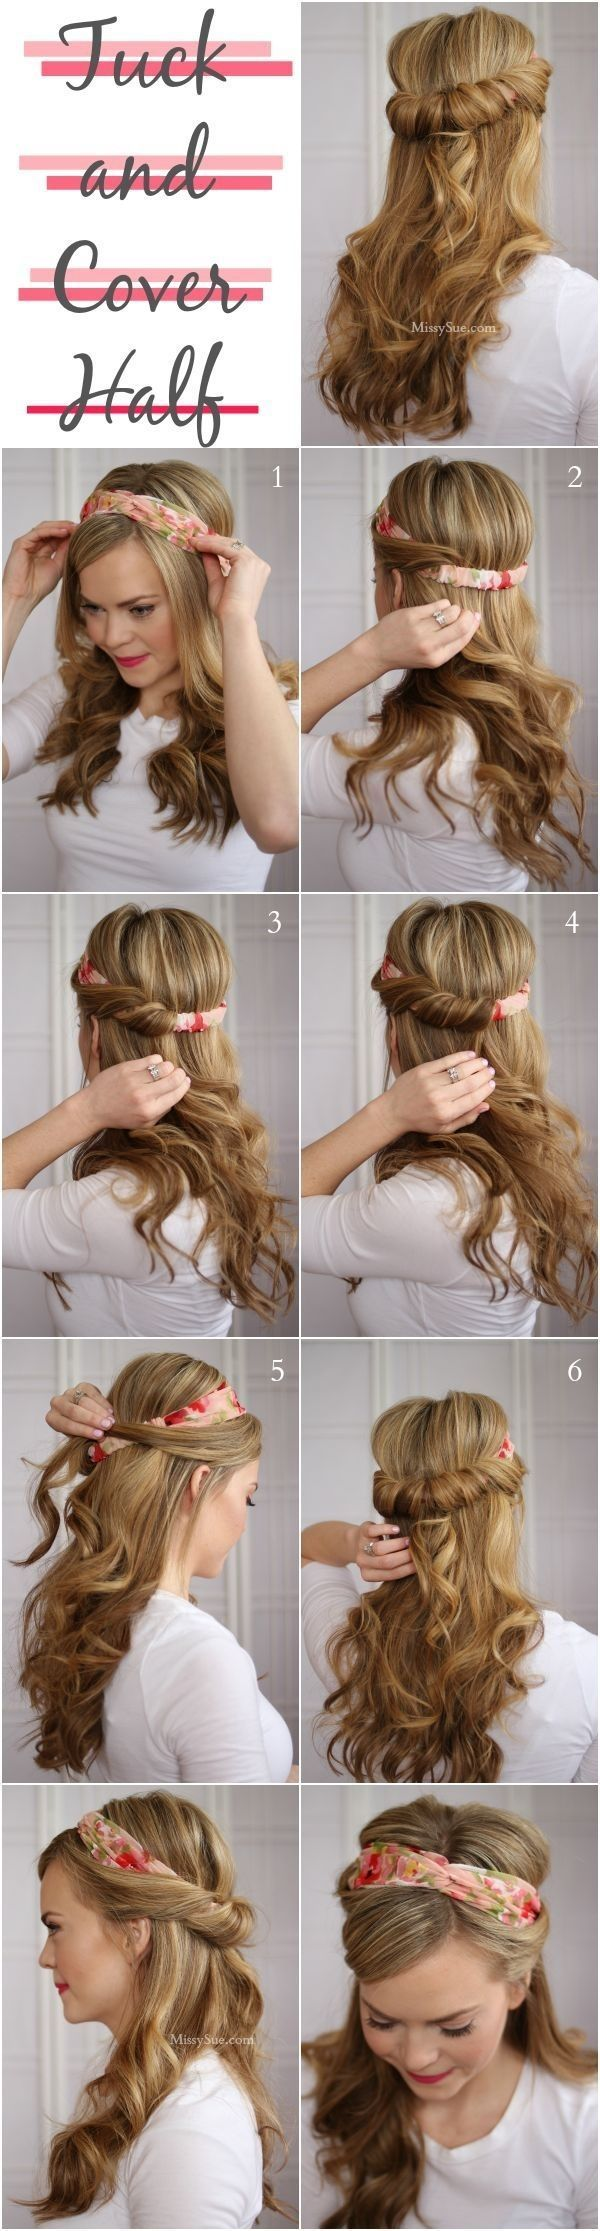 Hairstyles for long hair easy hairstyles you can wear to work